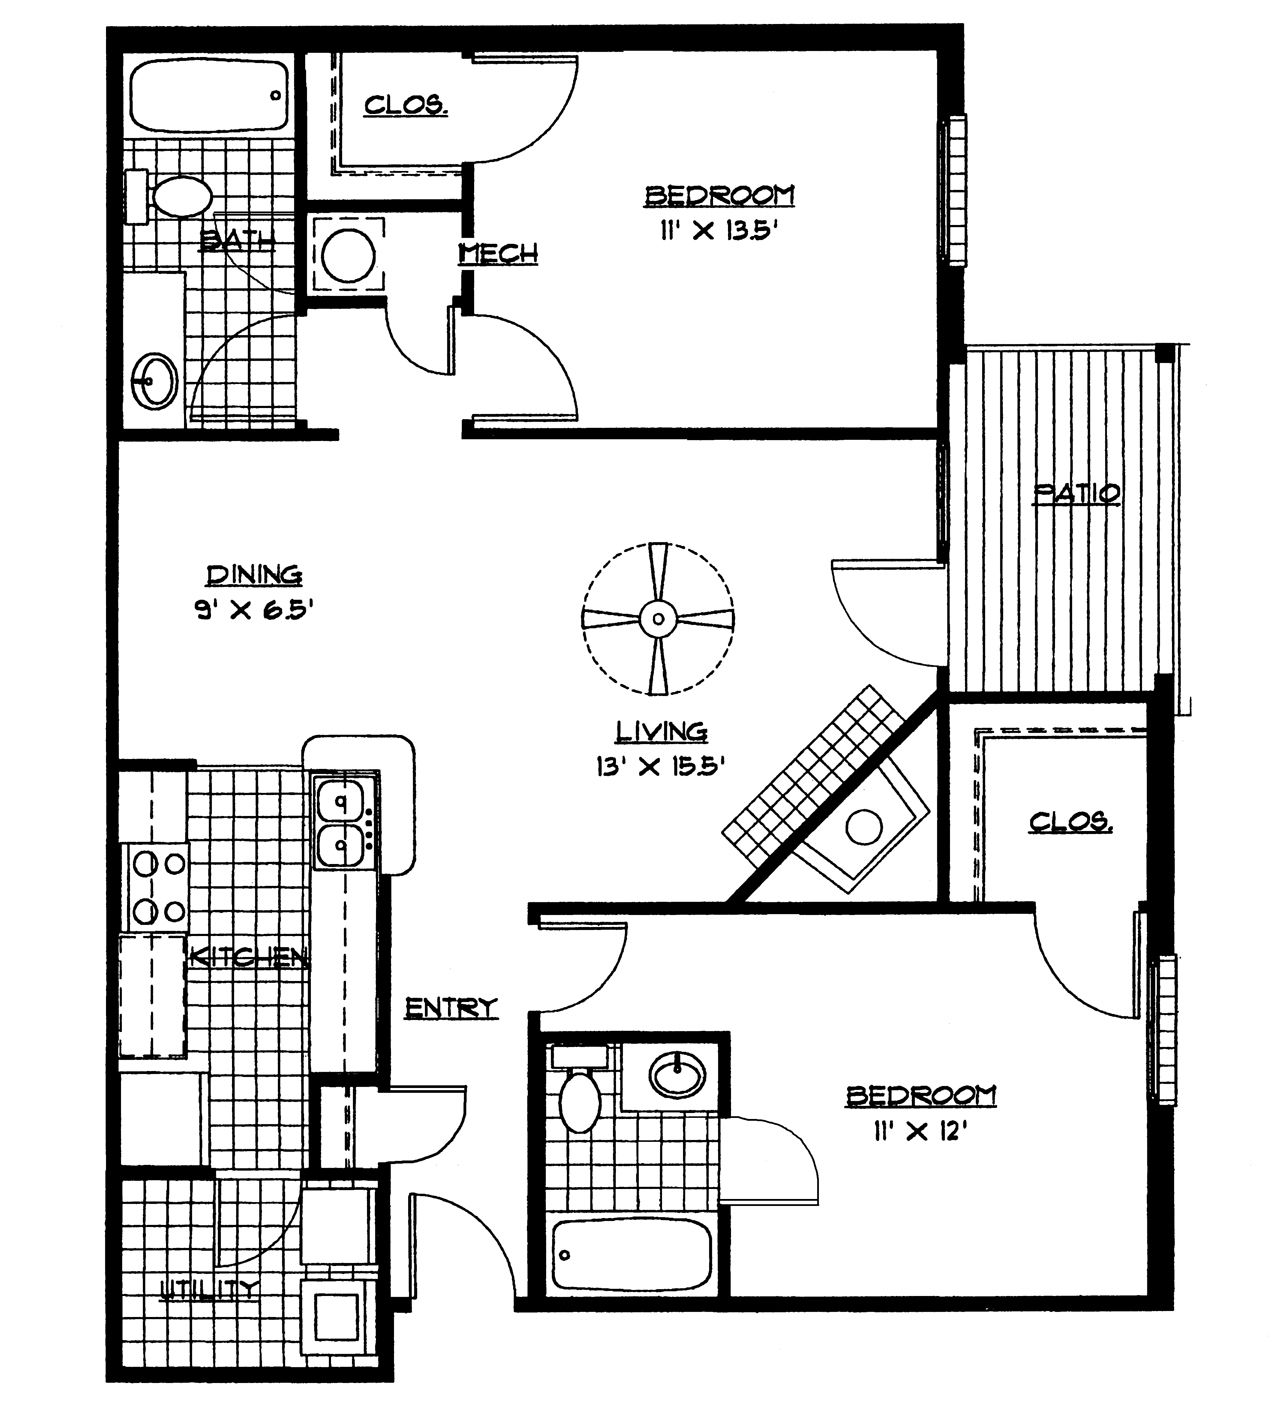 Small house floor plans 2 bedrooms bedroom floor plan Create house plans online free